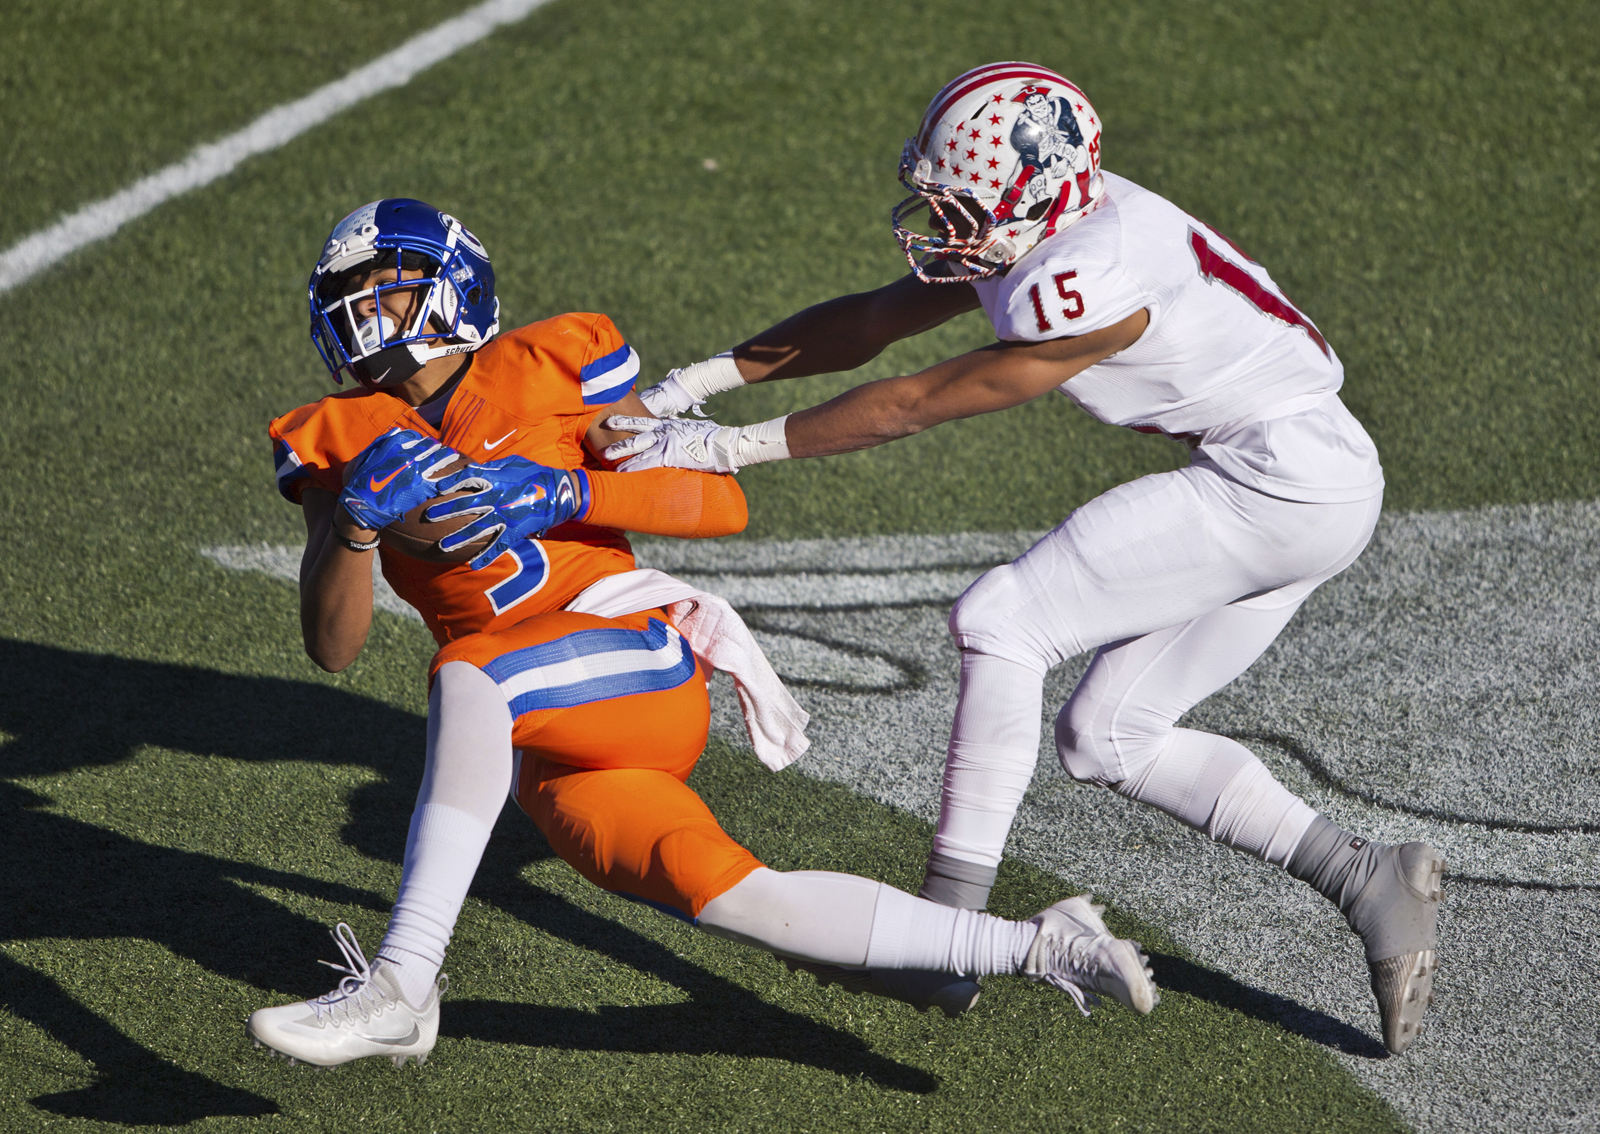 Bishop Gorman's Jalen Nailor (3) catches a pass against Liberty's Octavian Bell (15) during their high school football state championship game at Sam Boyd Stadium on Saturday, Dec. 3, 2016. (LE Baskow/Las Vegas Sun via AP) ORG XMIT: NVLVS102